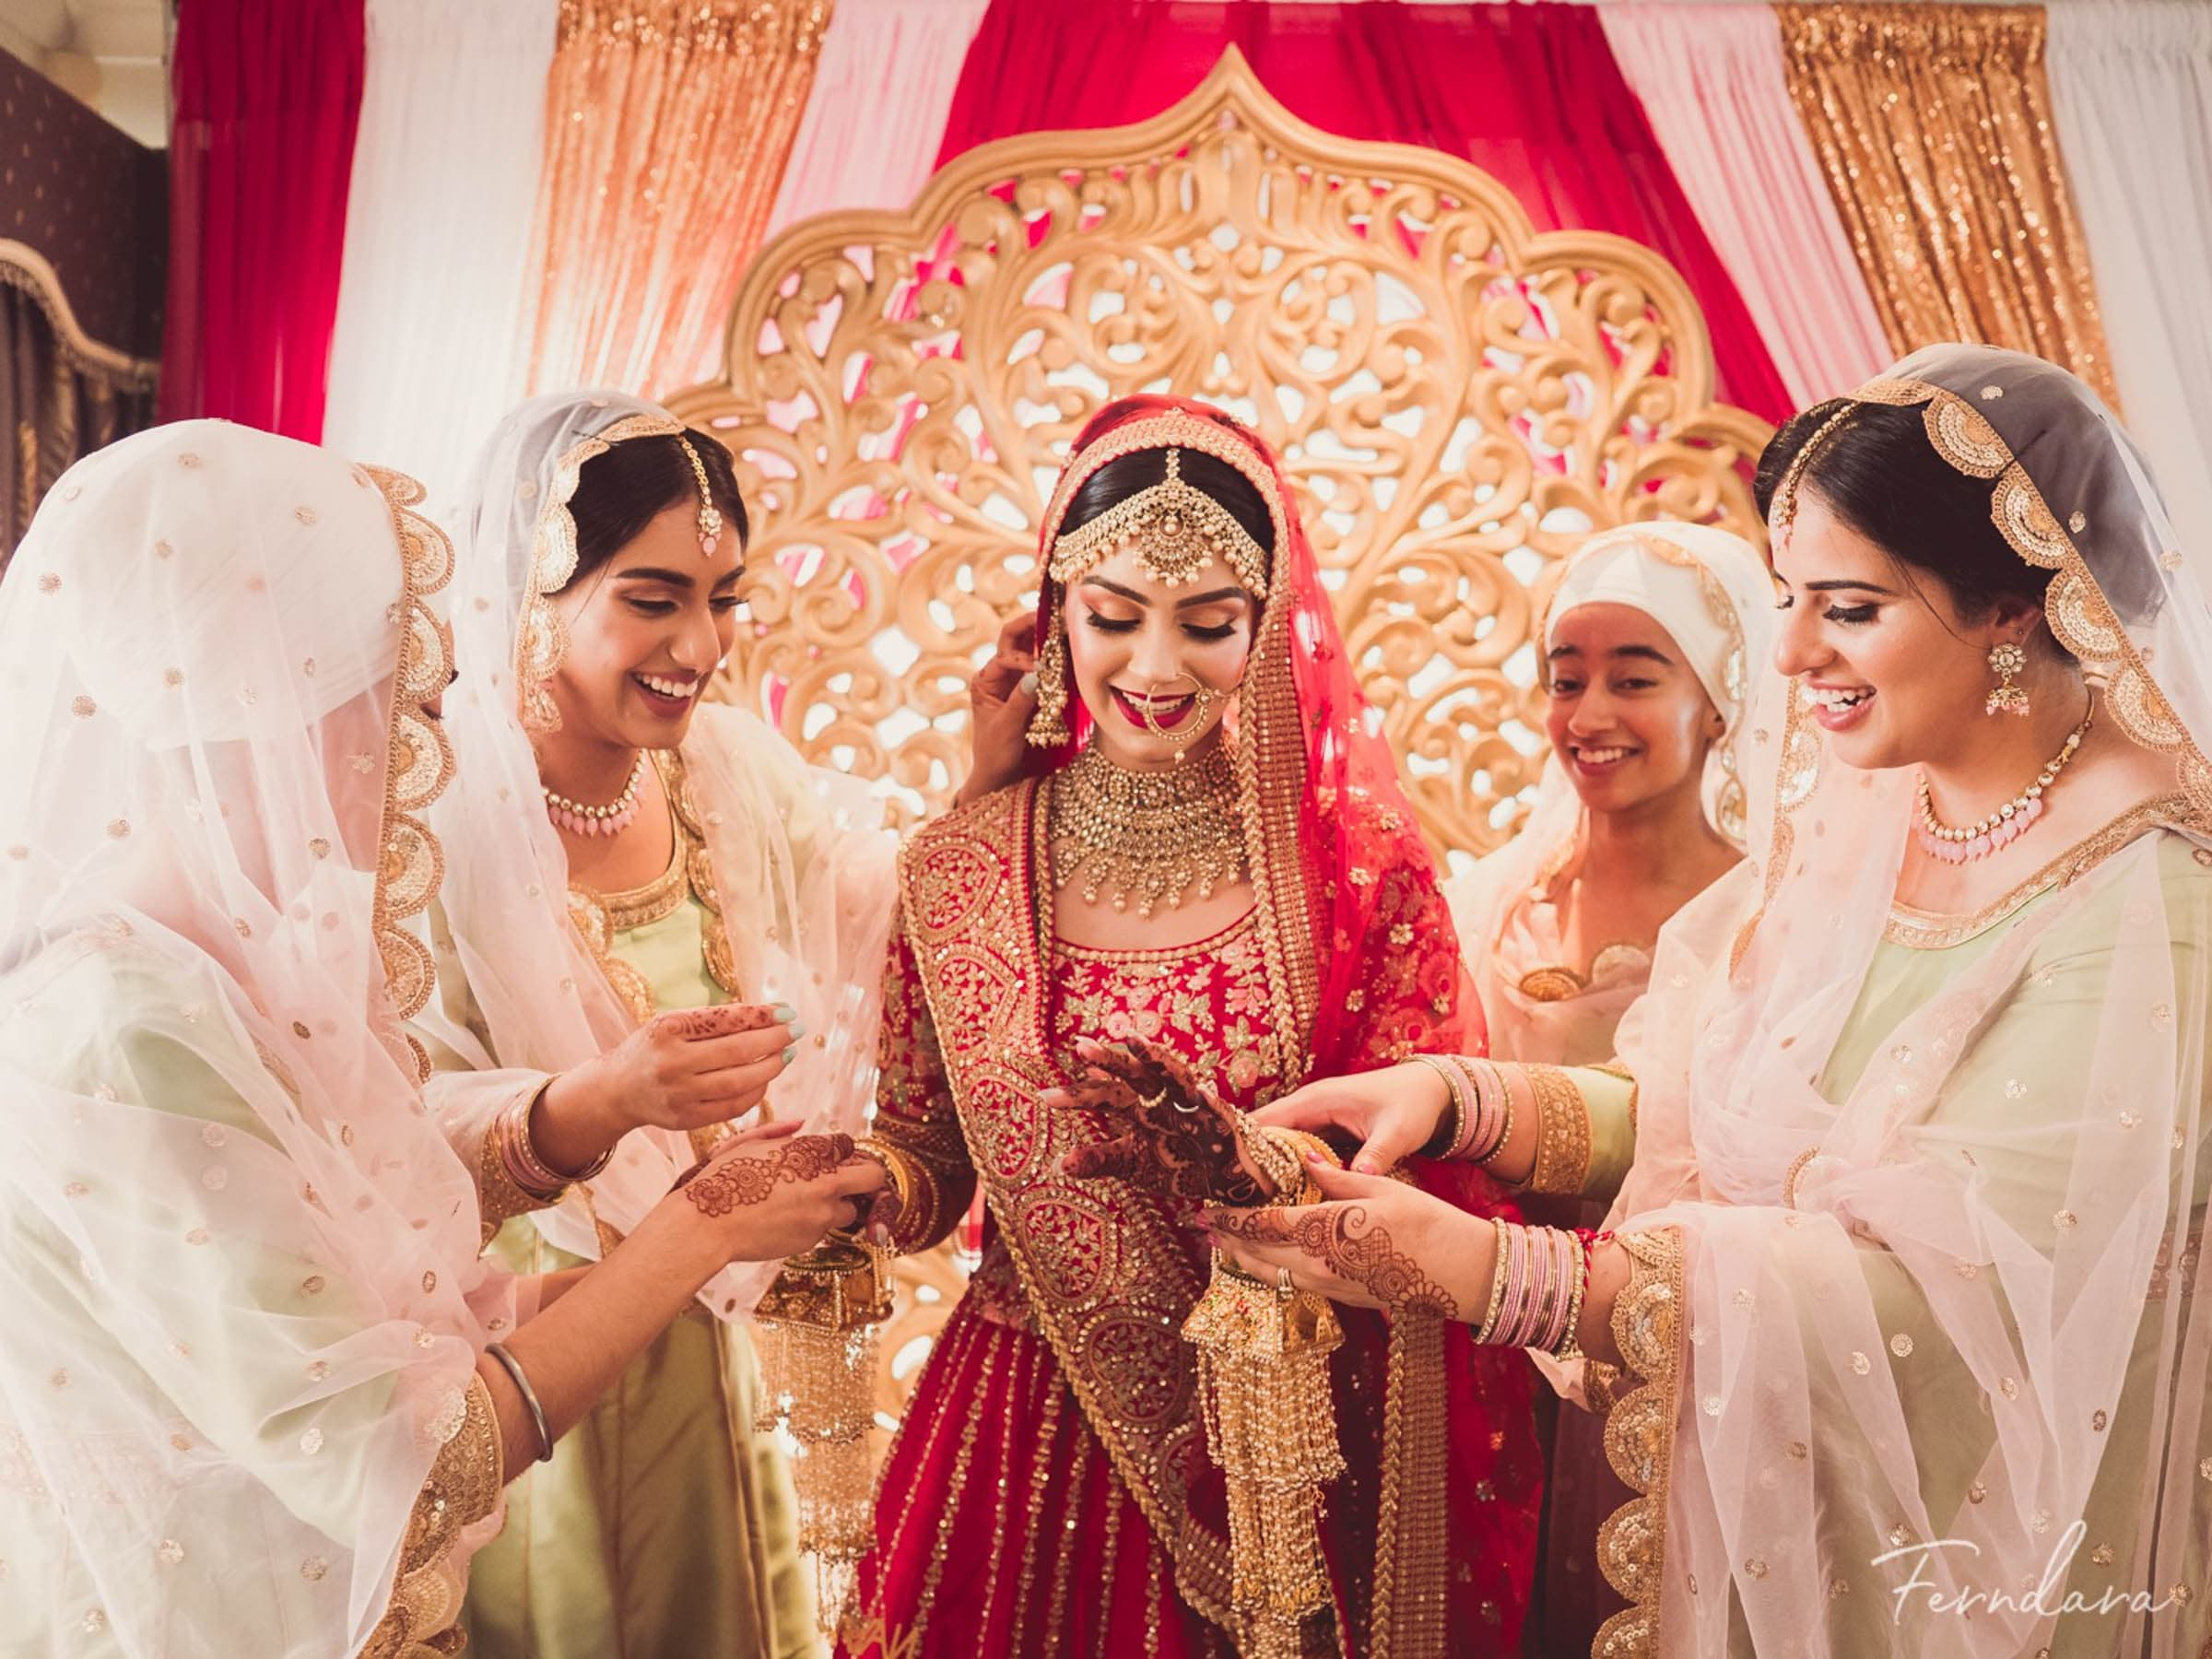 Melbourne bridal henna and makeup artist Faadhilah Buksh of Fadziies Mehndi And Beauty is spreading joy to Indian brides. The Maharani Diaries talks to the talented artist about her incredible work.